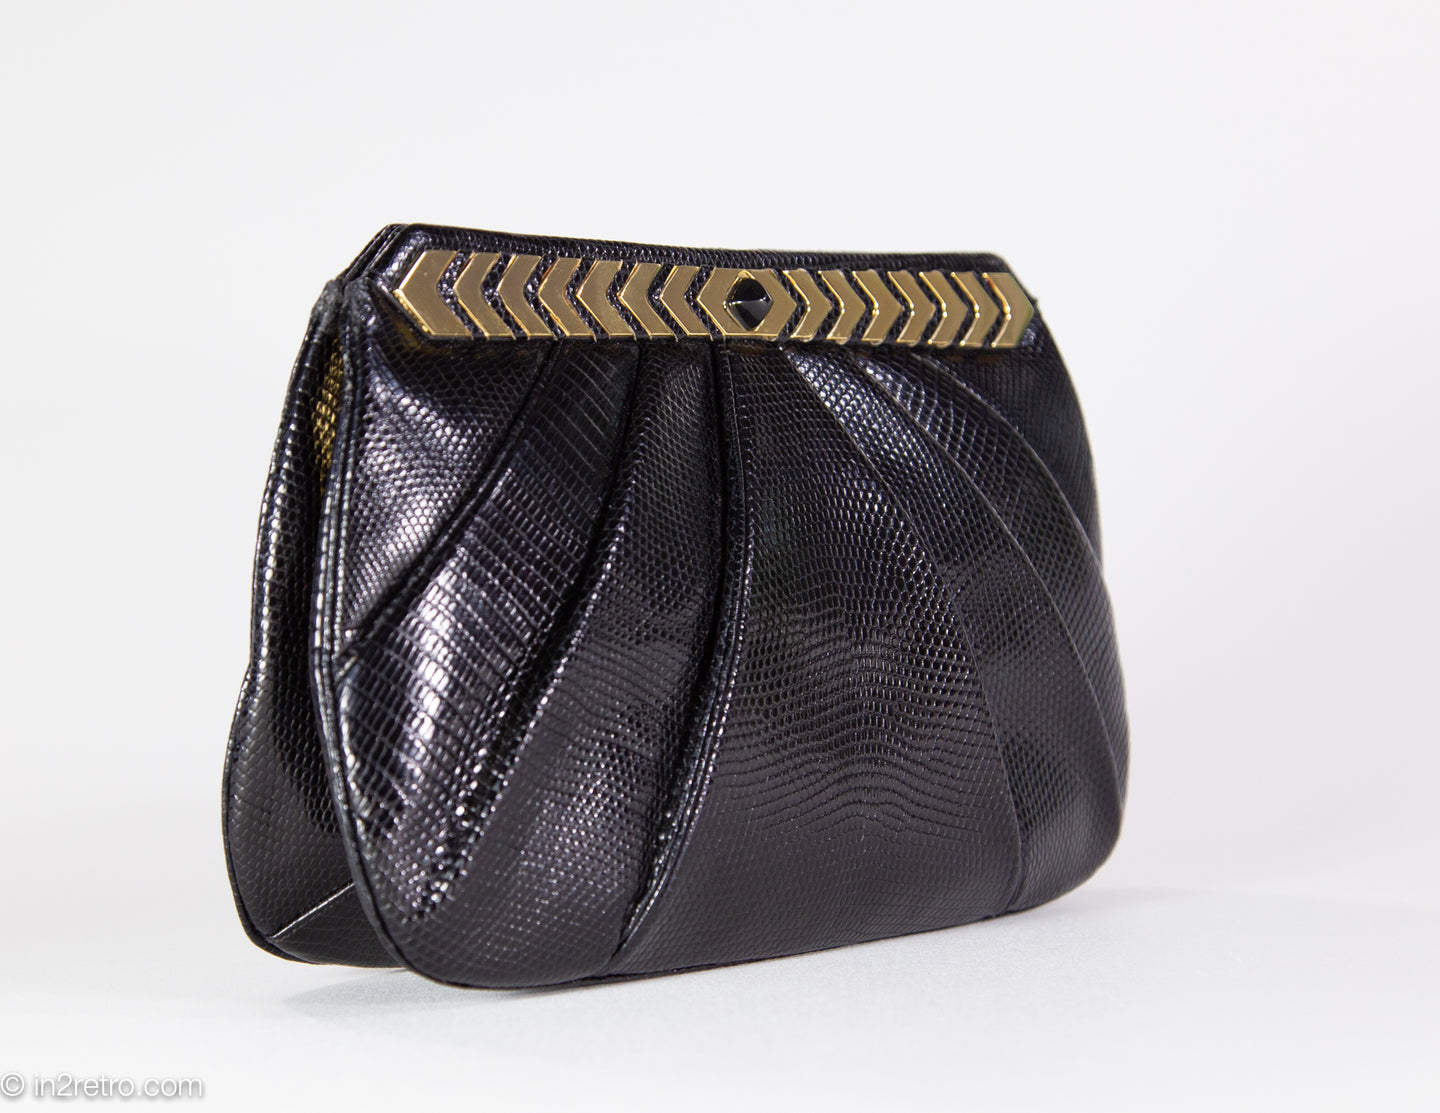 VINTAGE AUTHENTIC JUDITH LEIBER BLACK KARUNG REPTILE SHOULDER/CLUTCH BAG